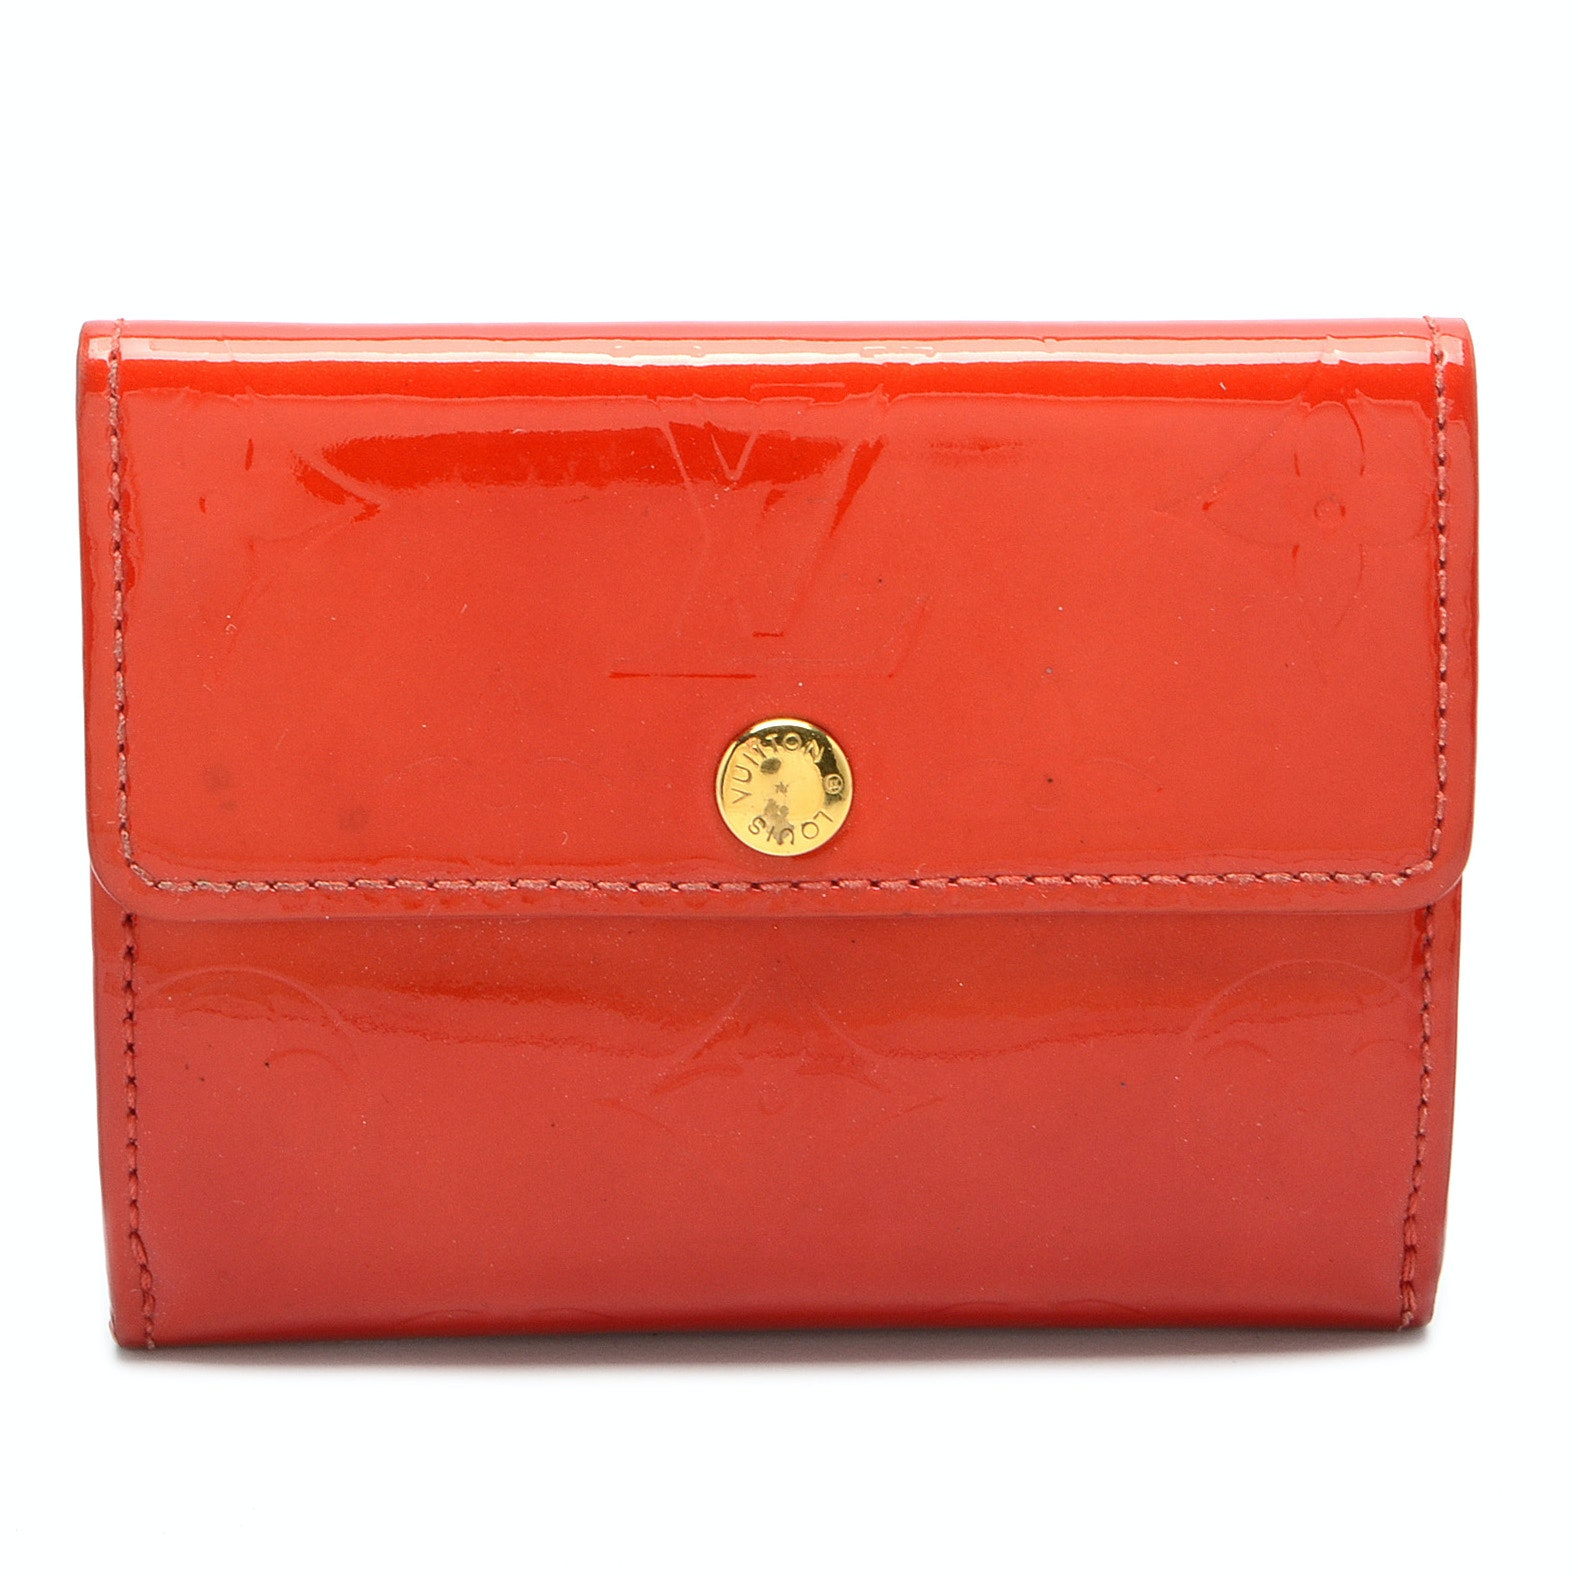 Louis Vuitton Red Patent Leather Wallet